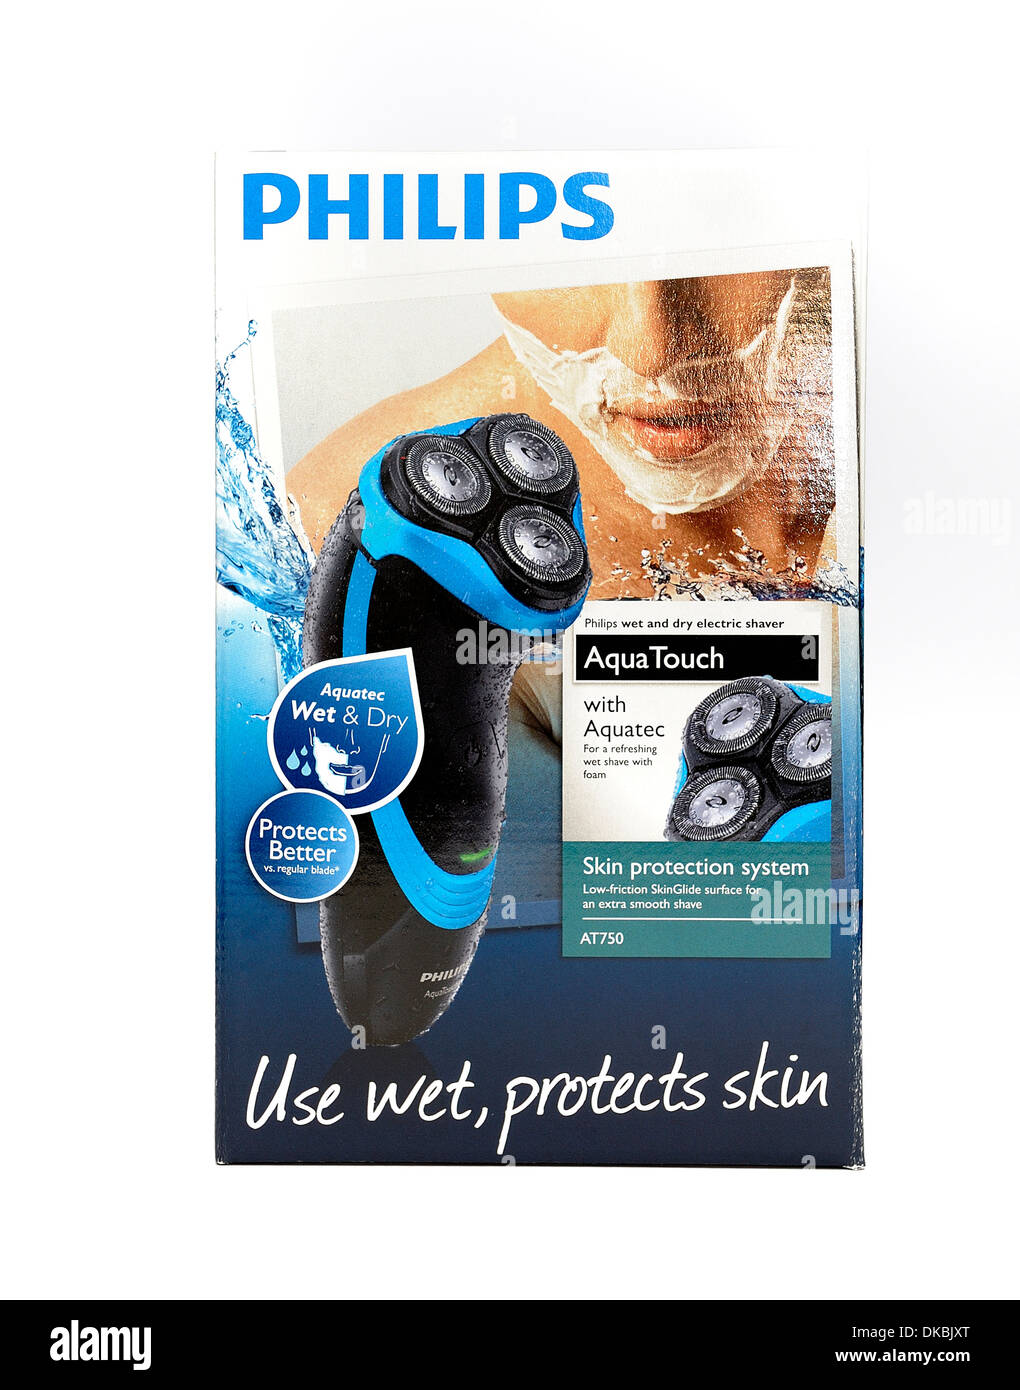 Philips Aqua touch rechargeable wet and dry electric shaver - Stock Image